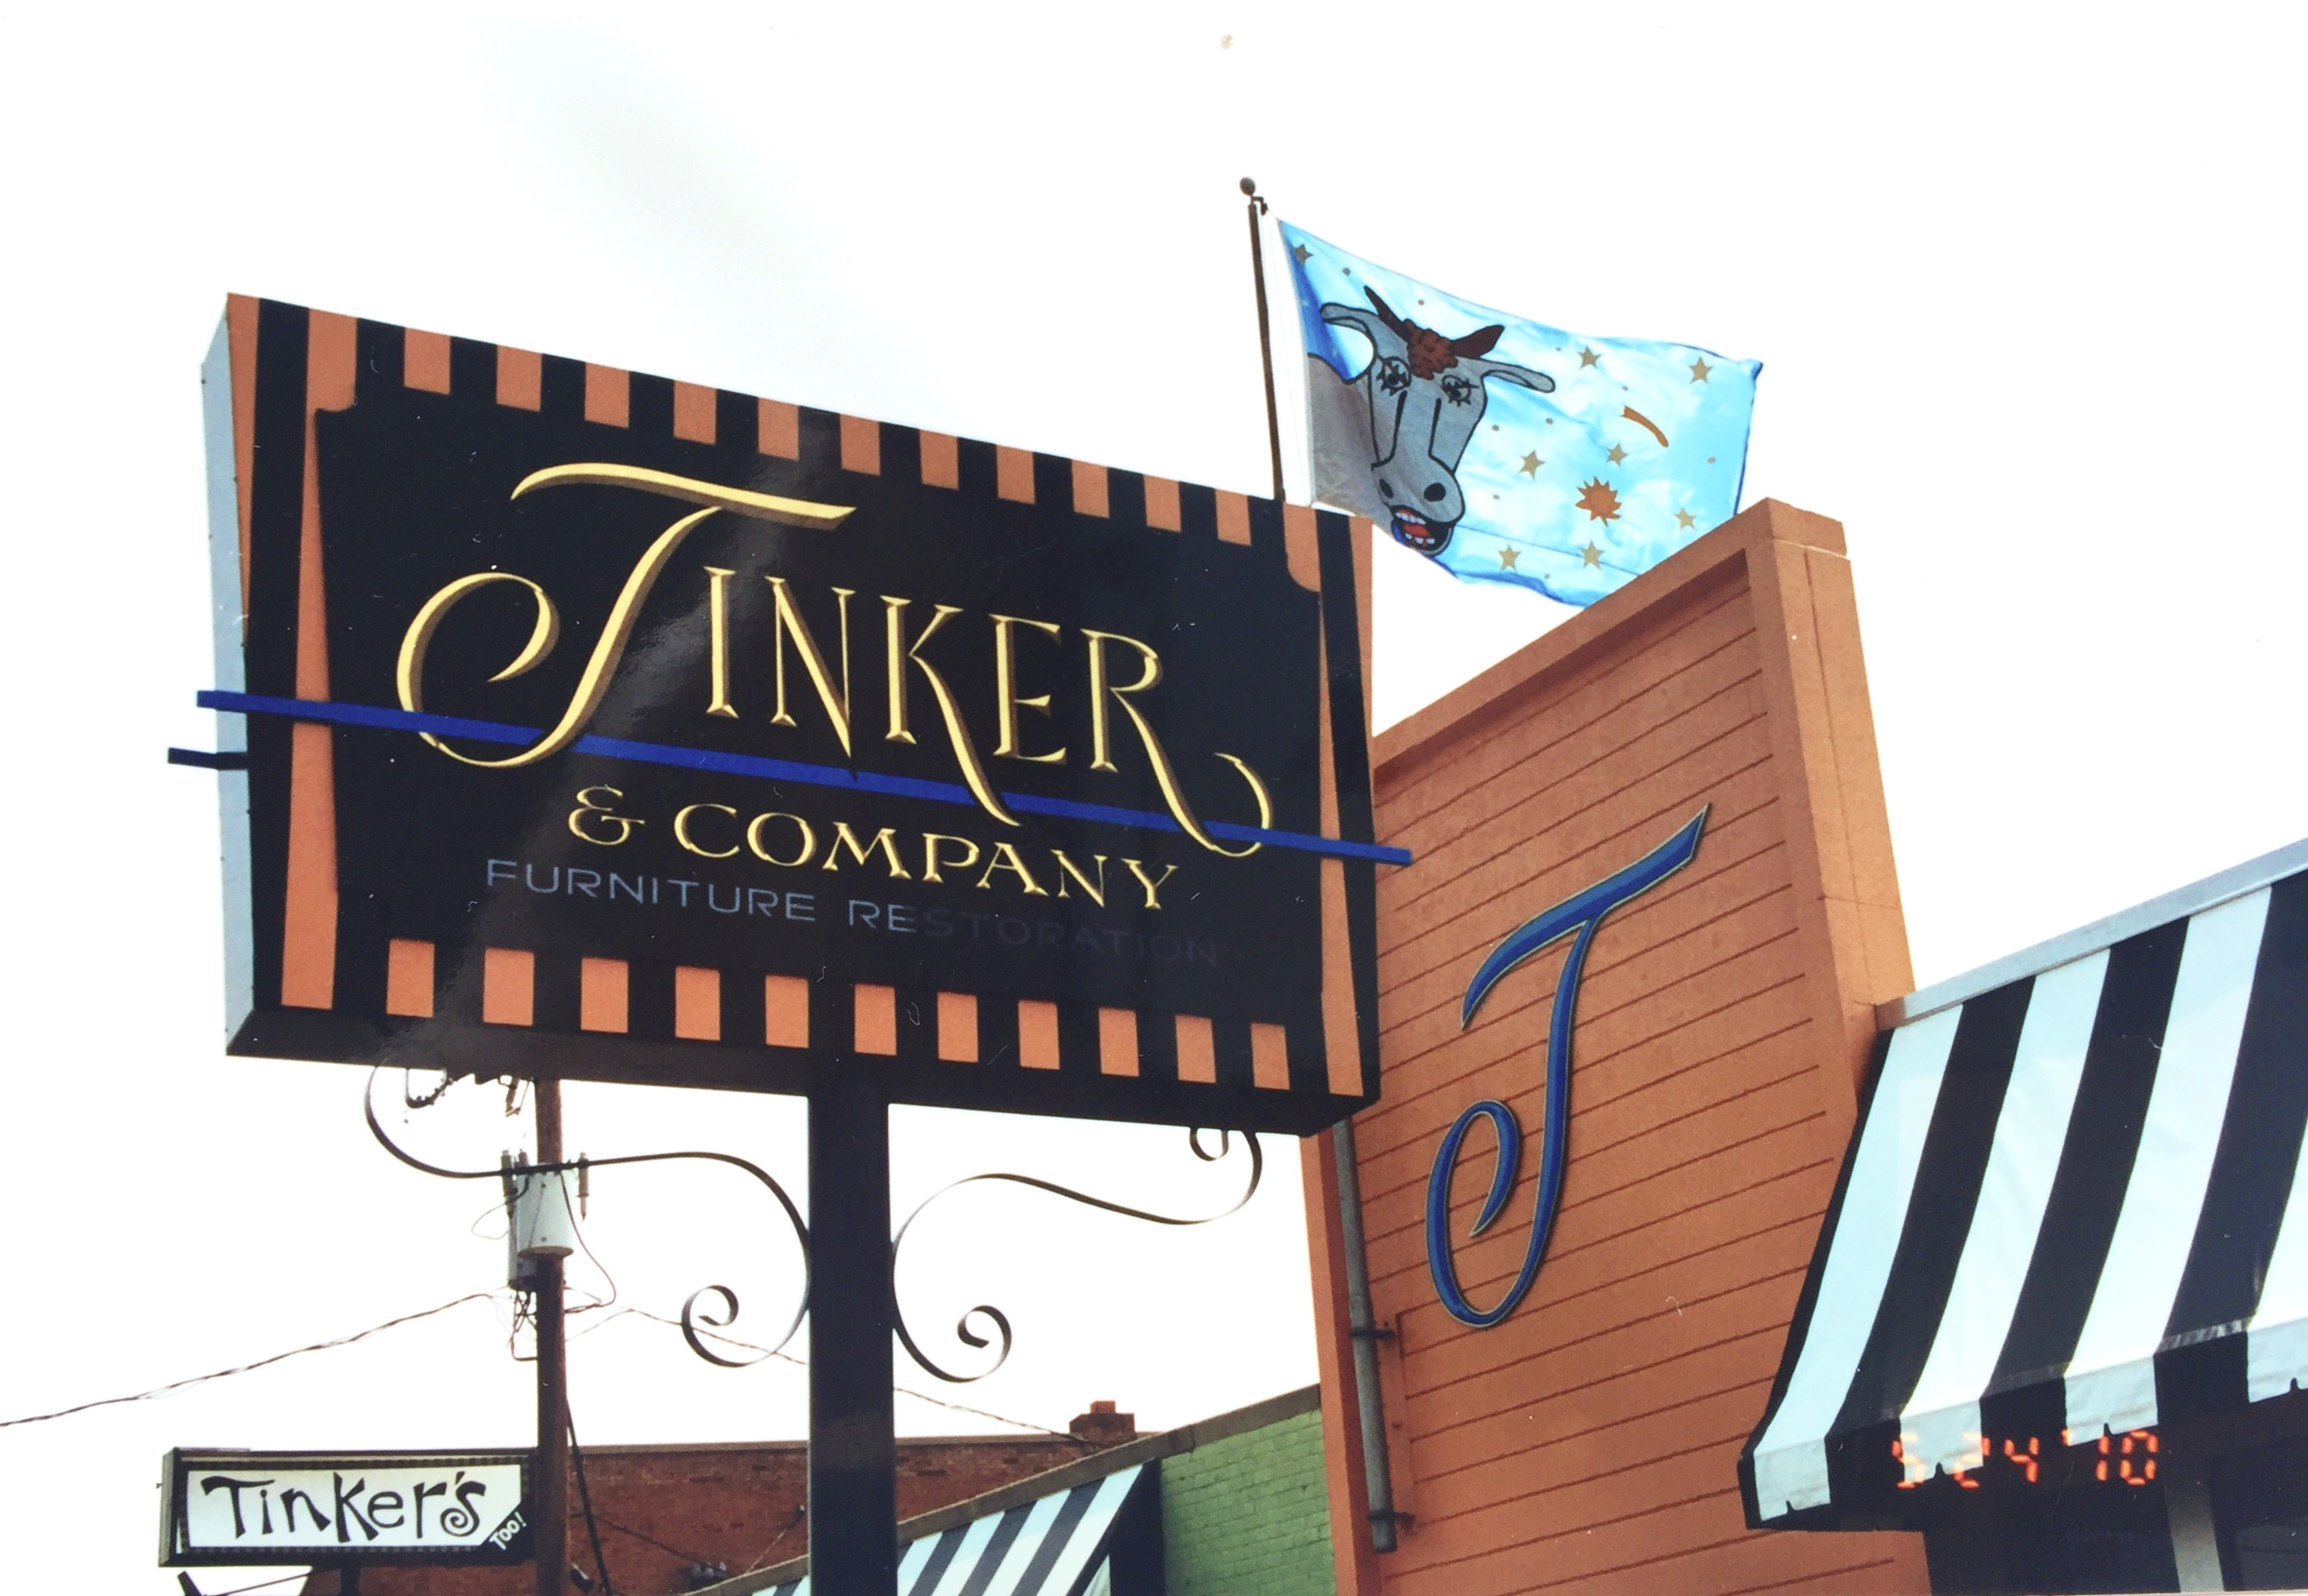 Tinker's in Richmond Virginia, RVA